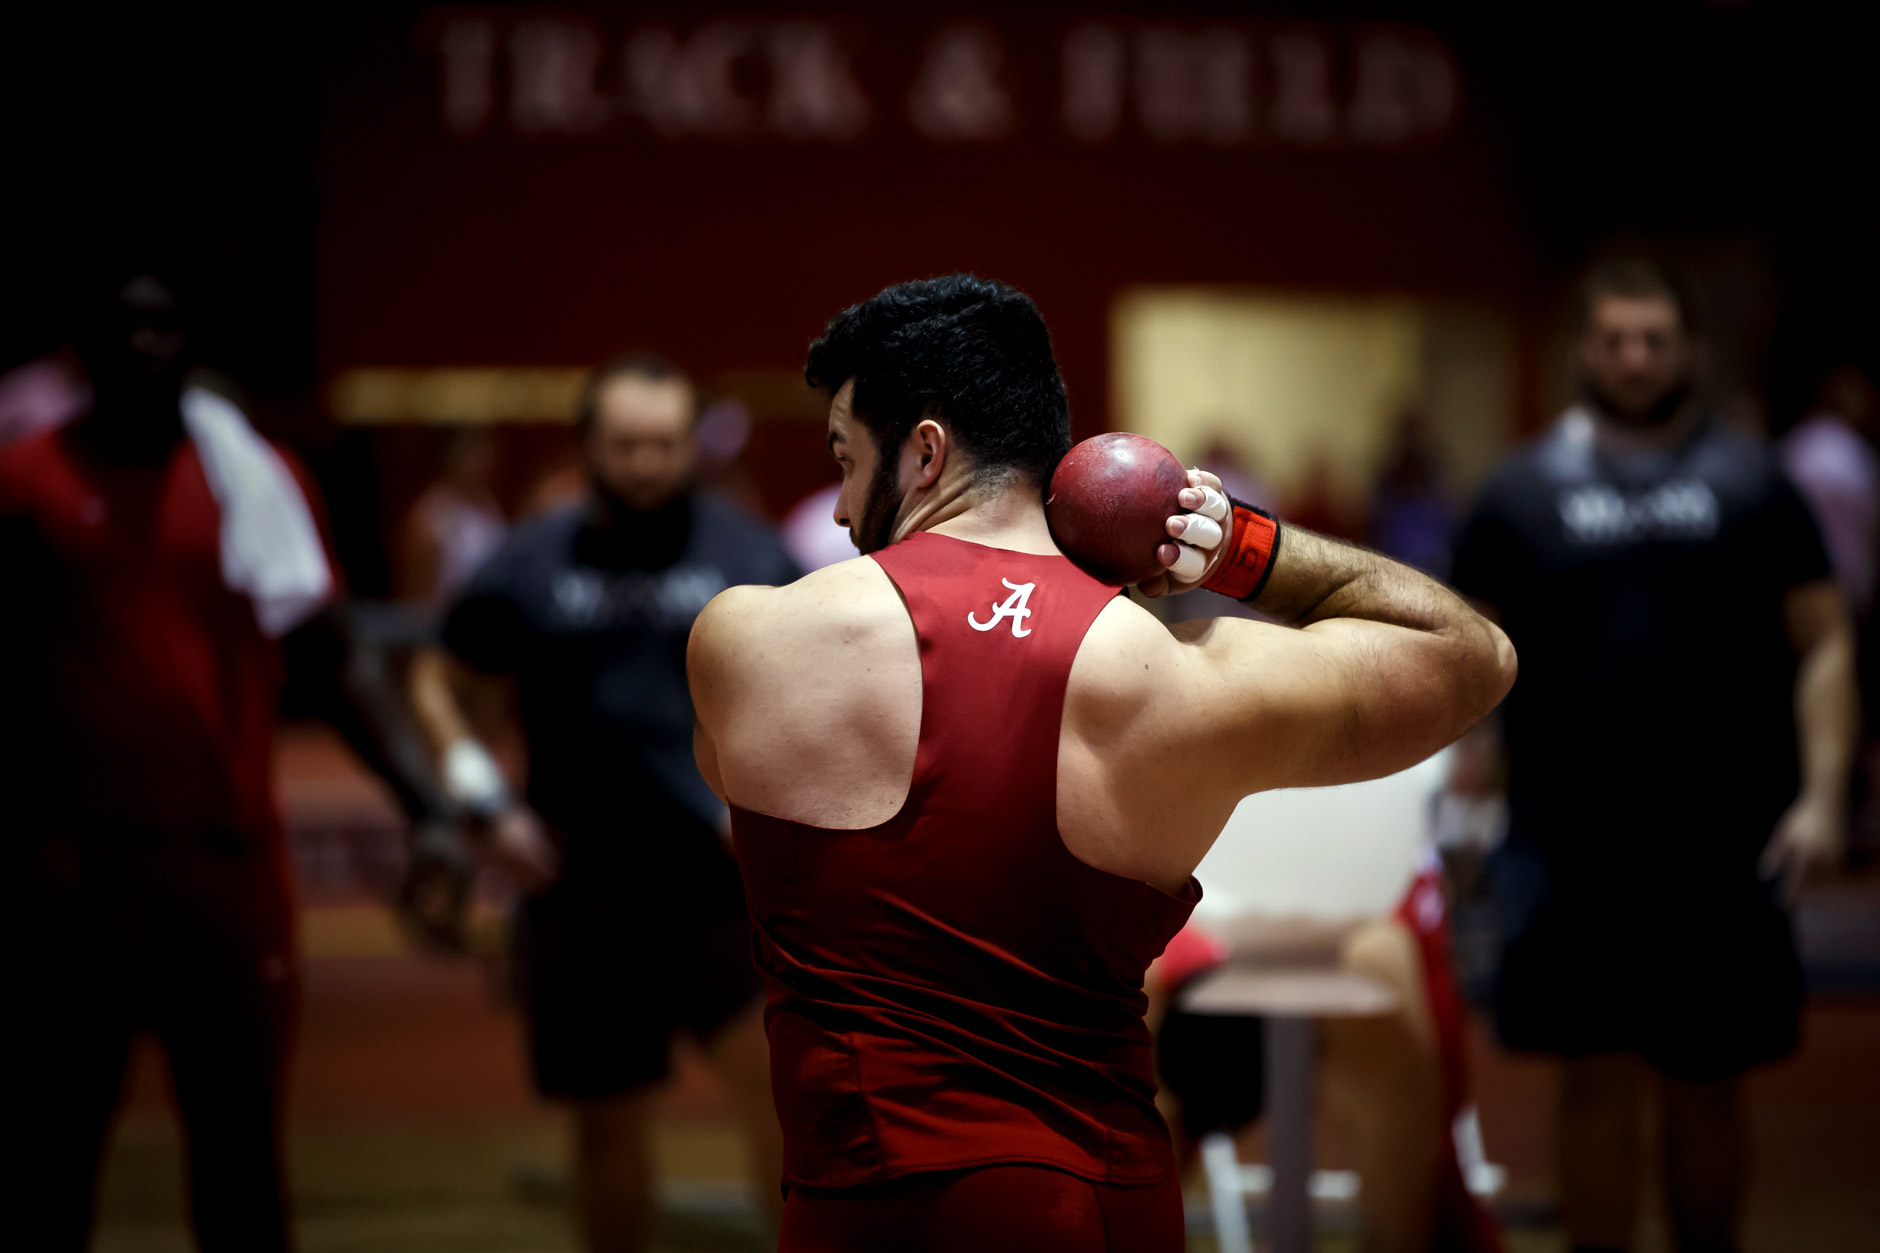 Alabama's Chago Basso competes in the shot put during the Indiana University Relays in Bloomington, Indiana on Saturday, Feb. 1, 2020. (Photo by James Brosher)